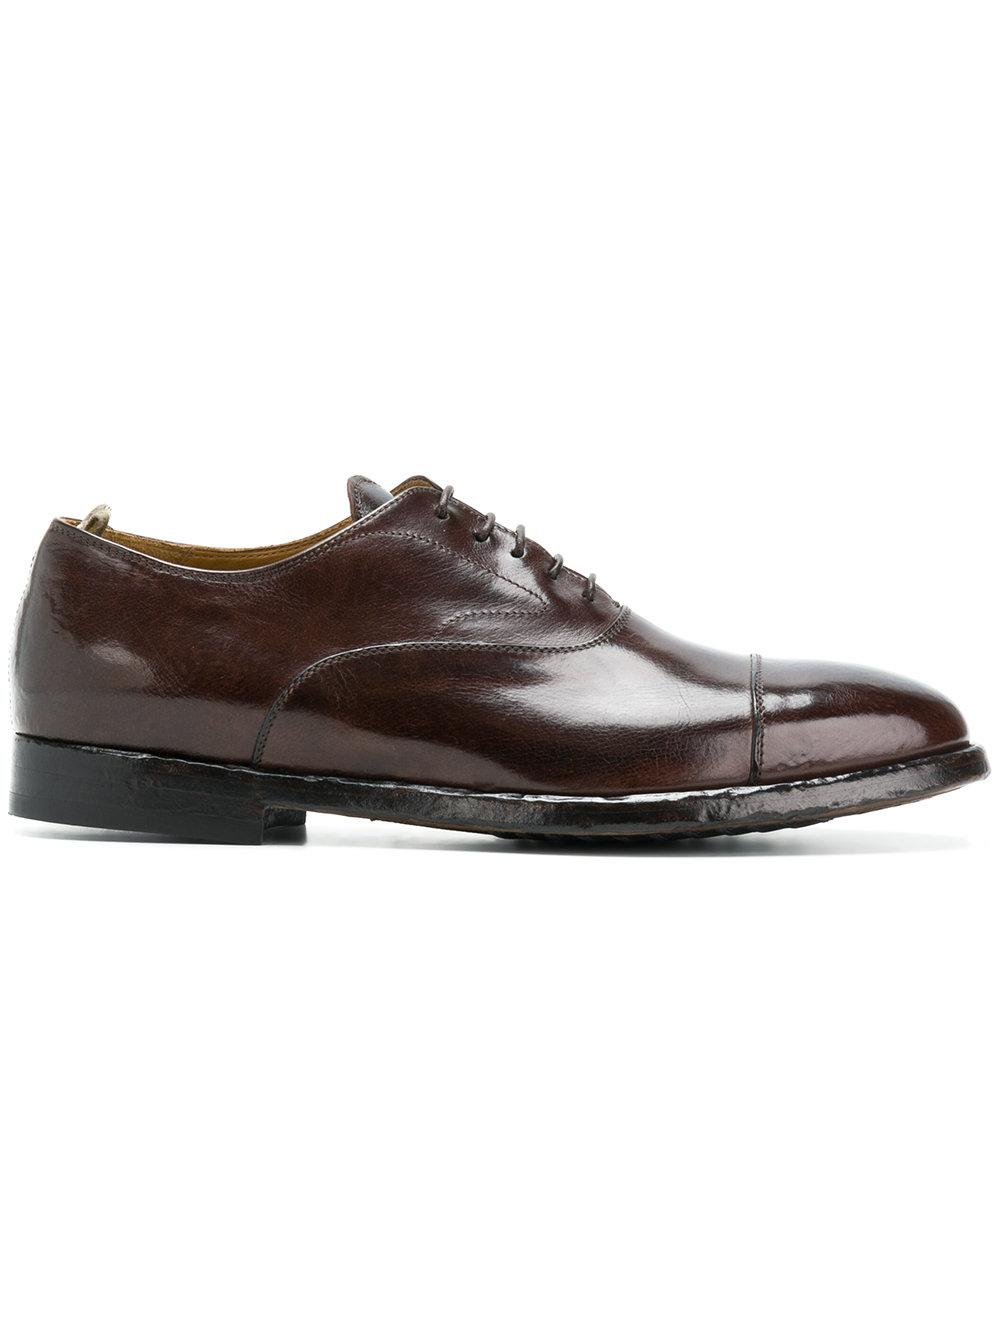 Officine Creative Herve Lace-up Shoes - Brown